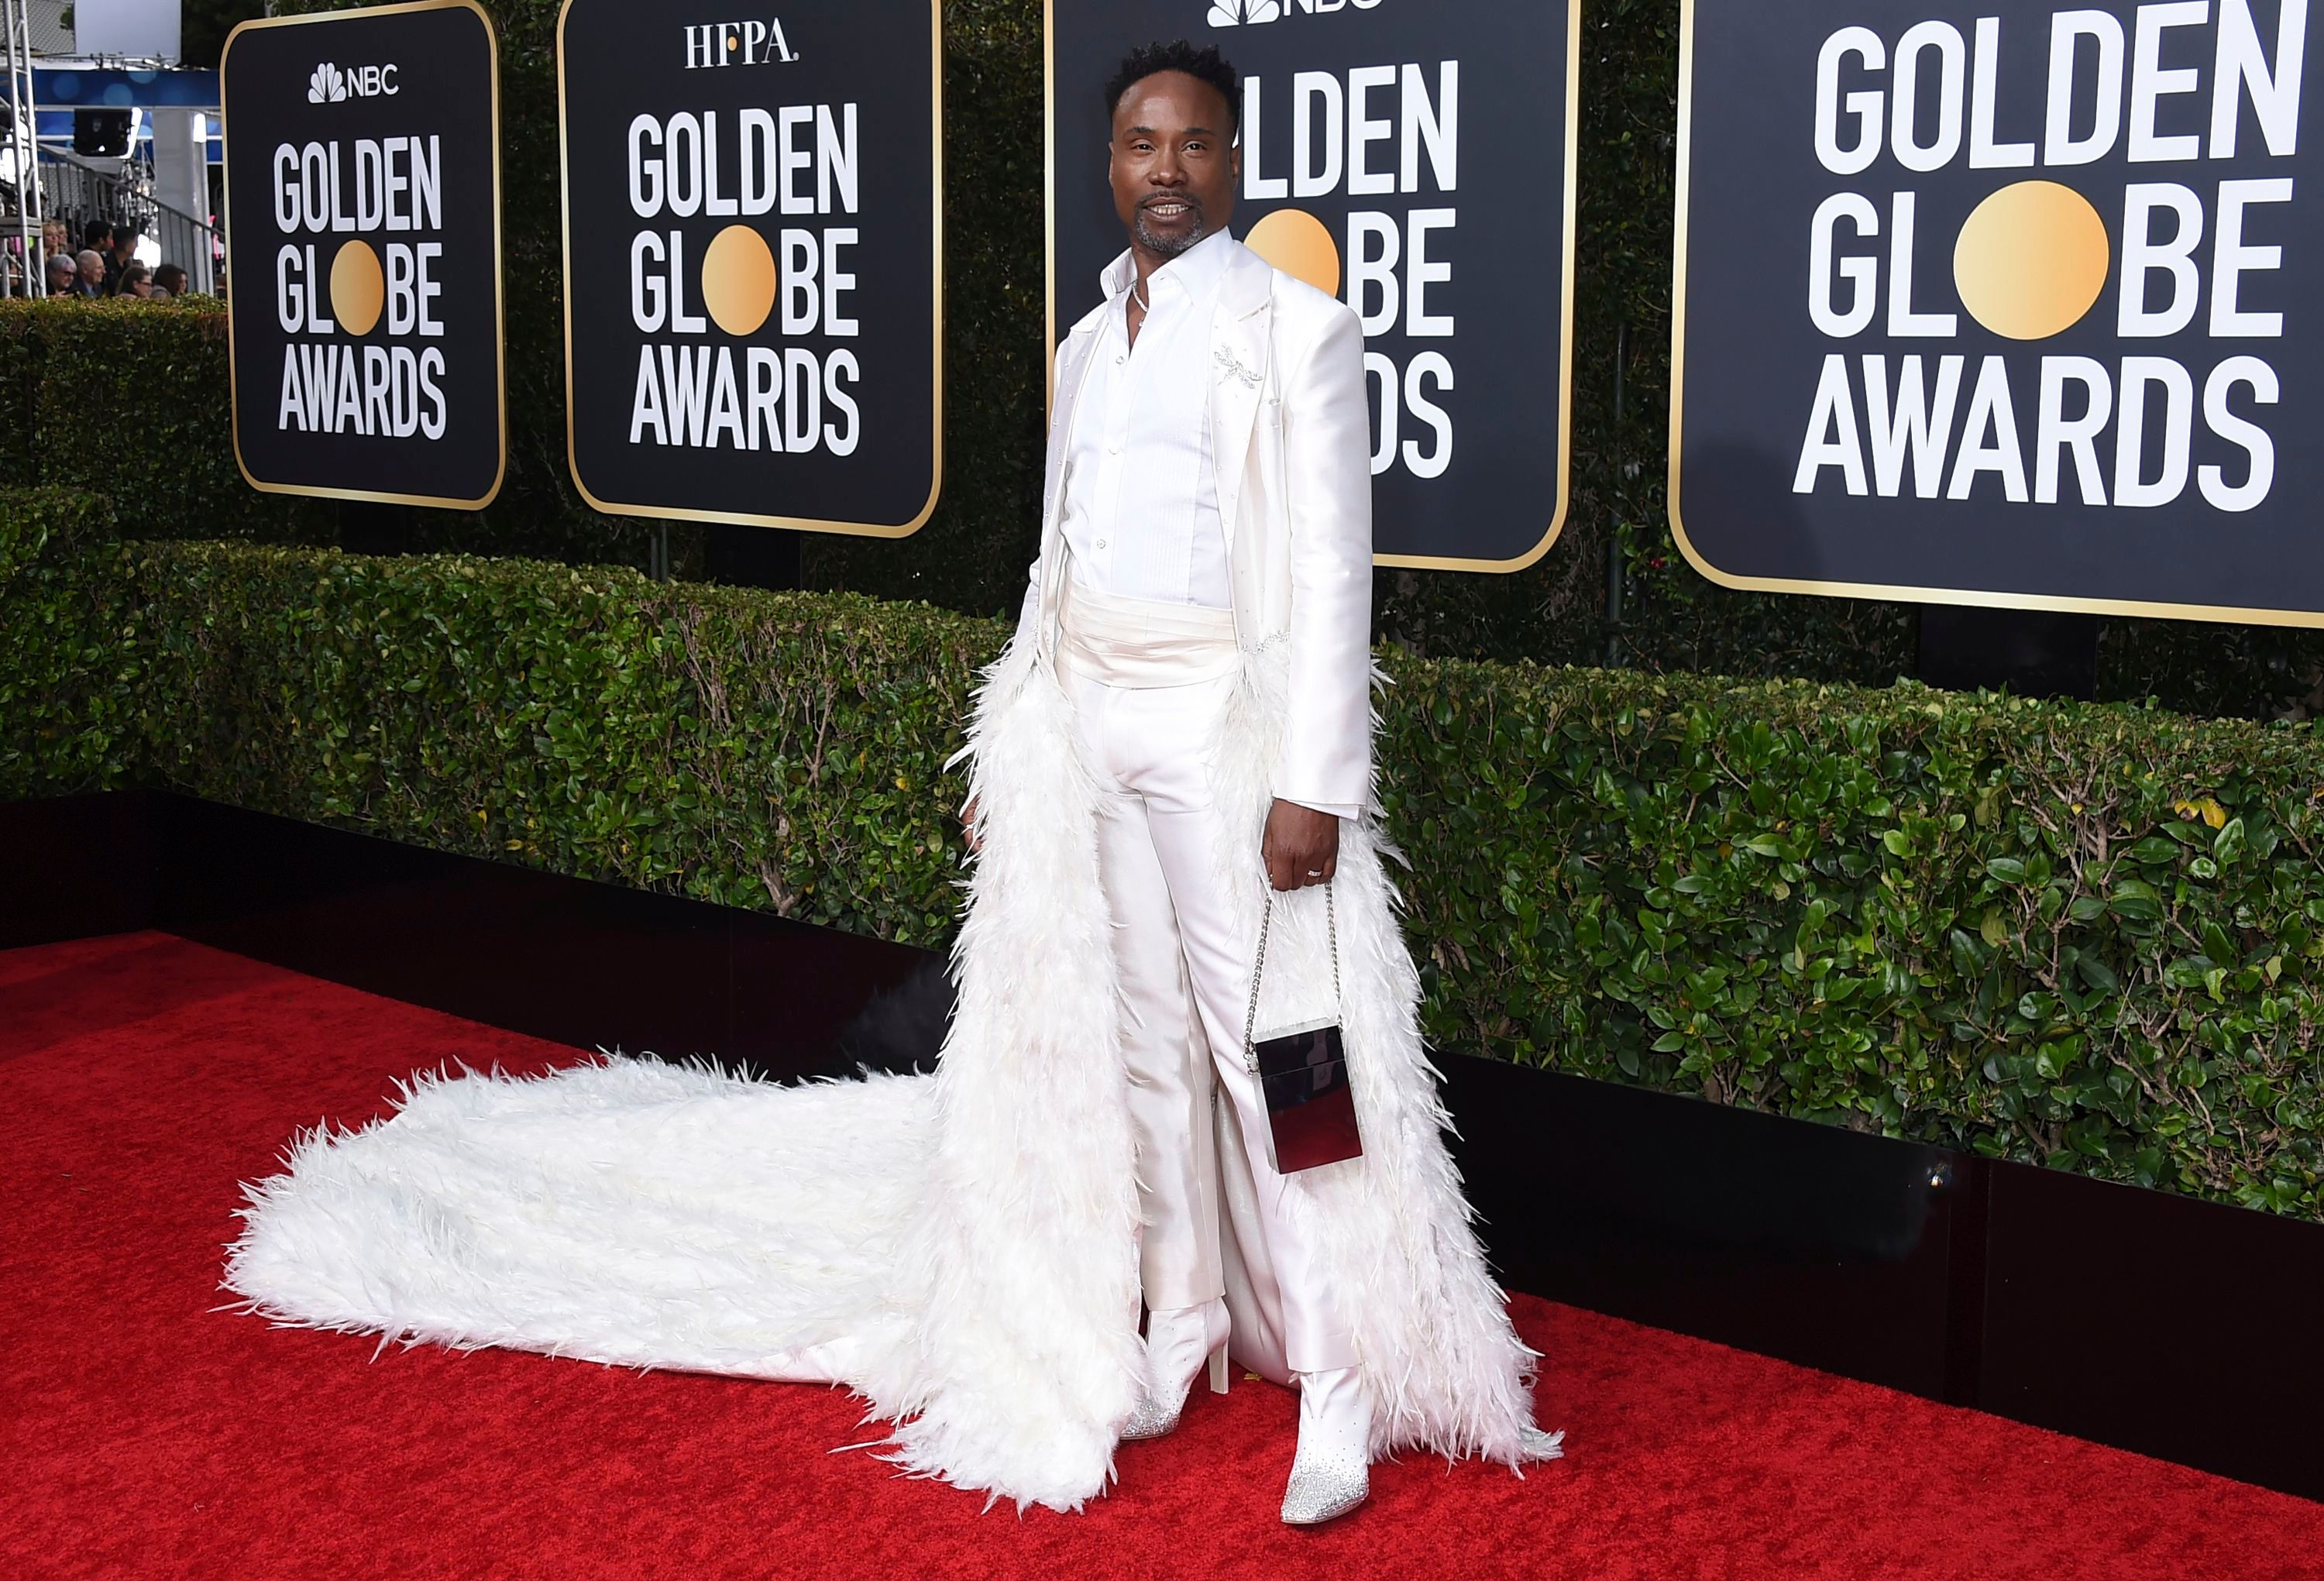 Billy Porter arrives at the 77th annual Golden Globe Awards at the Beverly Hilton Hotel, in Beverly Hills, Calif77th Annual Golden Globe Awards - Arrivals, Beverly Hills, USA - 05 Jan 2020